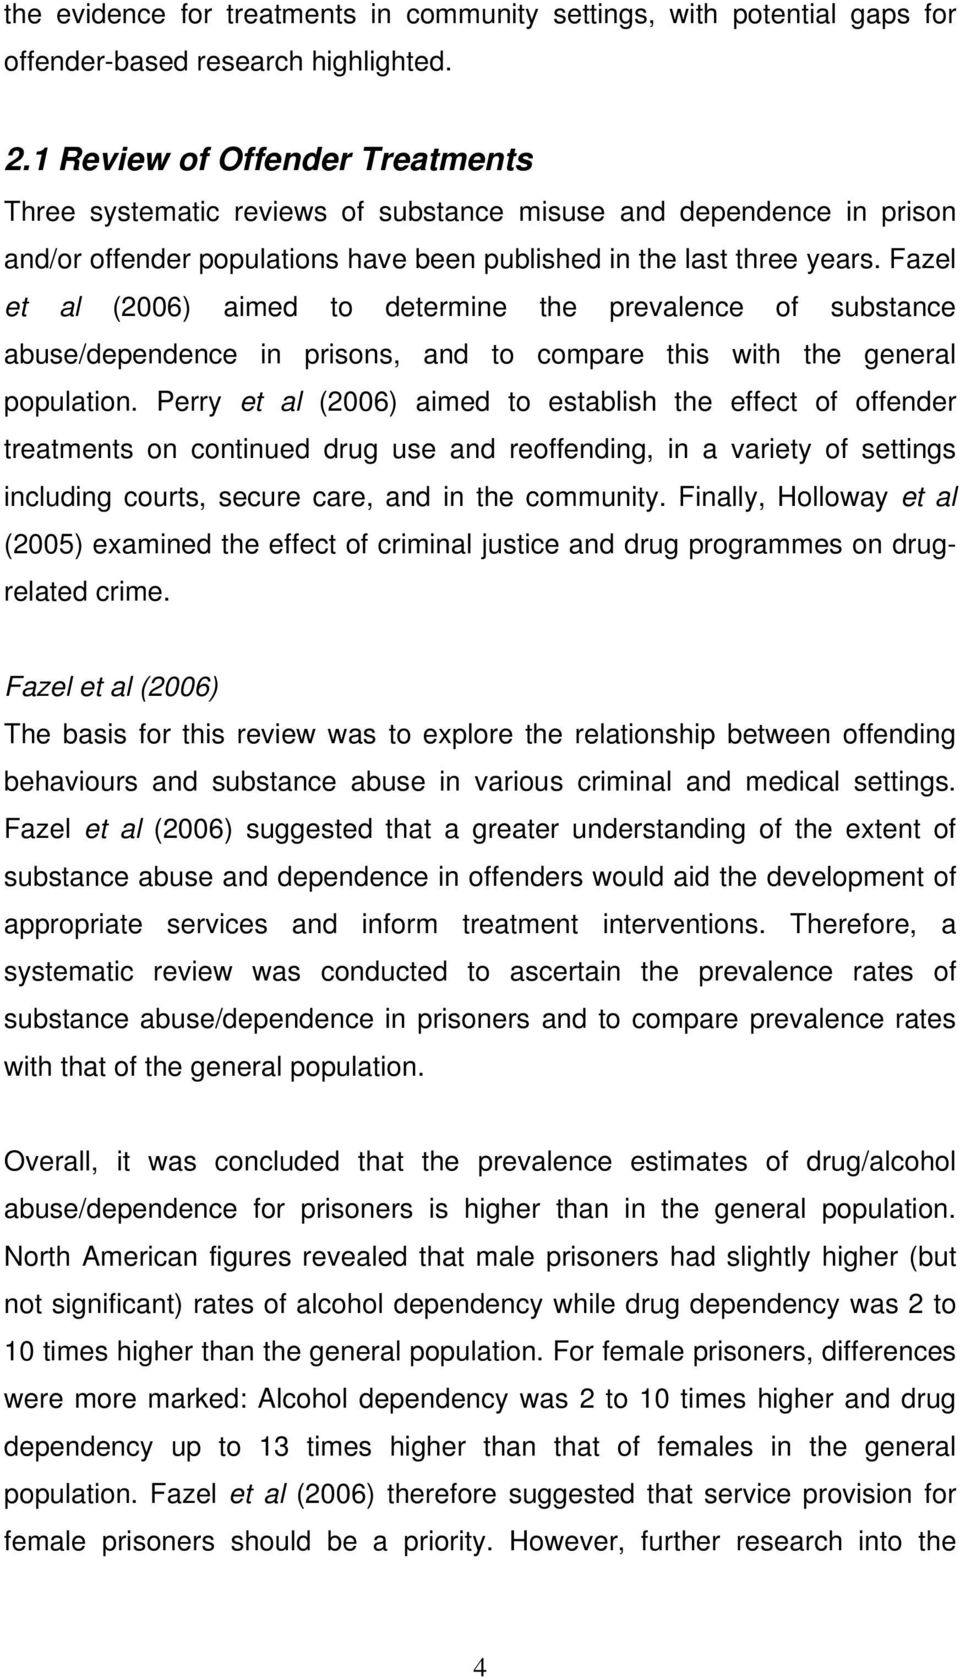 Fazel et al (2006) aimed to determine the prevalence of substance abuse/dependence in prisons, and to compare this with the general population.